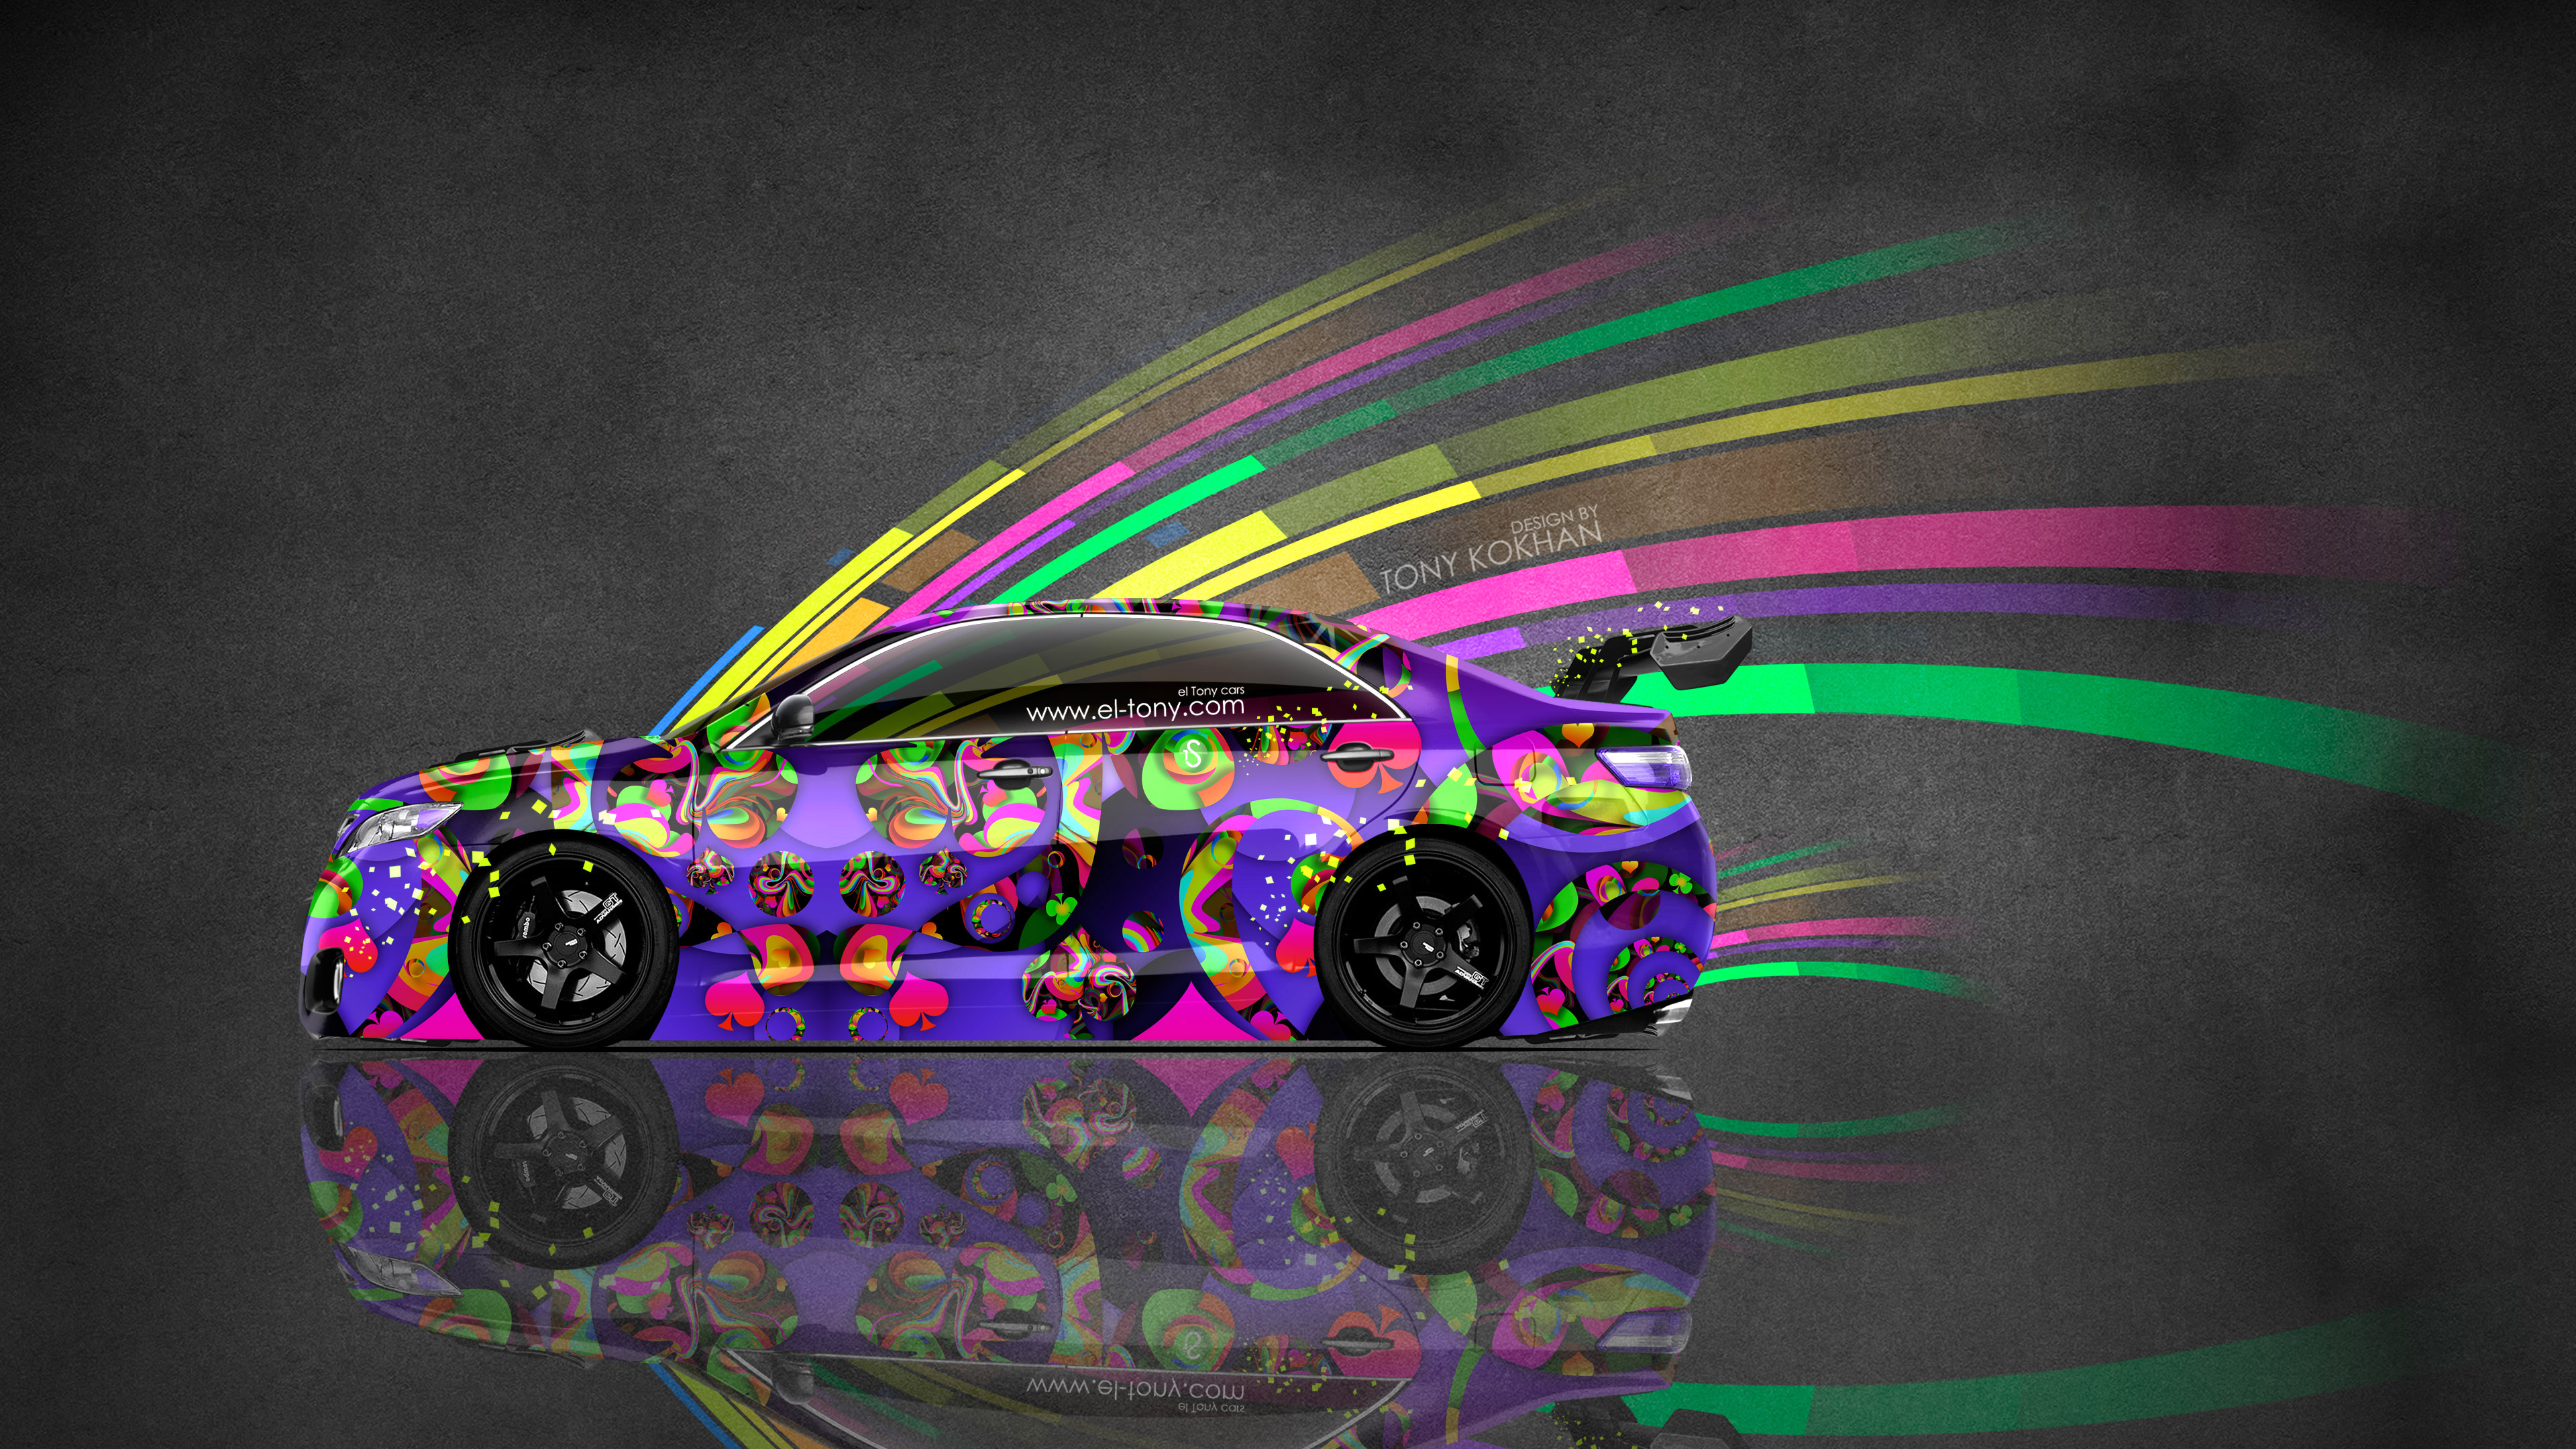 Toyota-Camry-JDM-Tuning-Side-Super-Abstract-Aerography-Car-2015-Art-Multicolors-4K-Wallpapers-design-by-Tony-Kokhan-www.el-tony.com-image